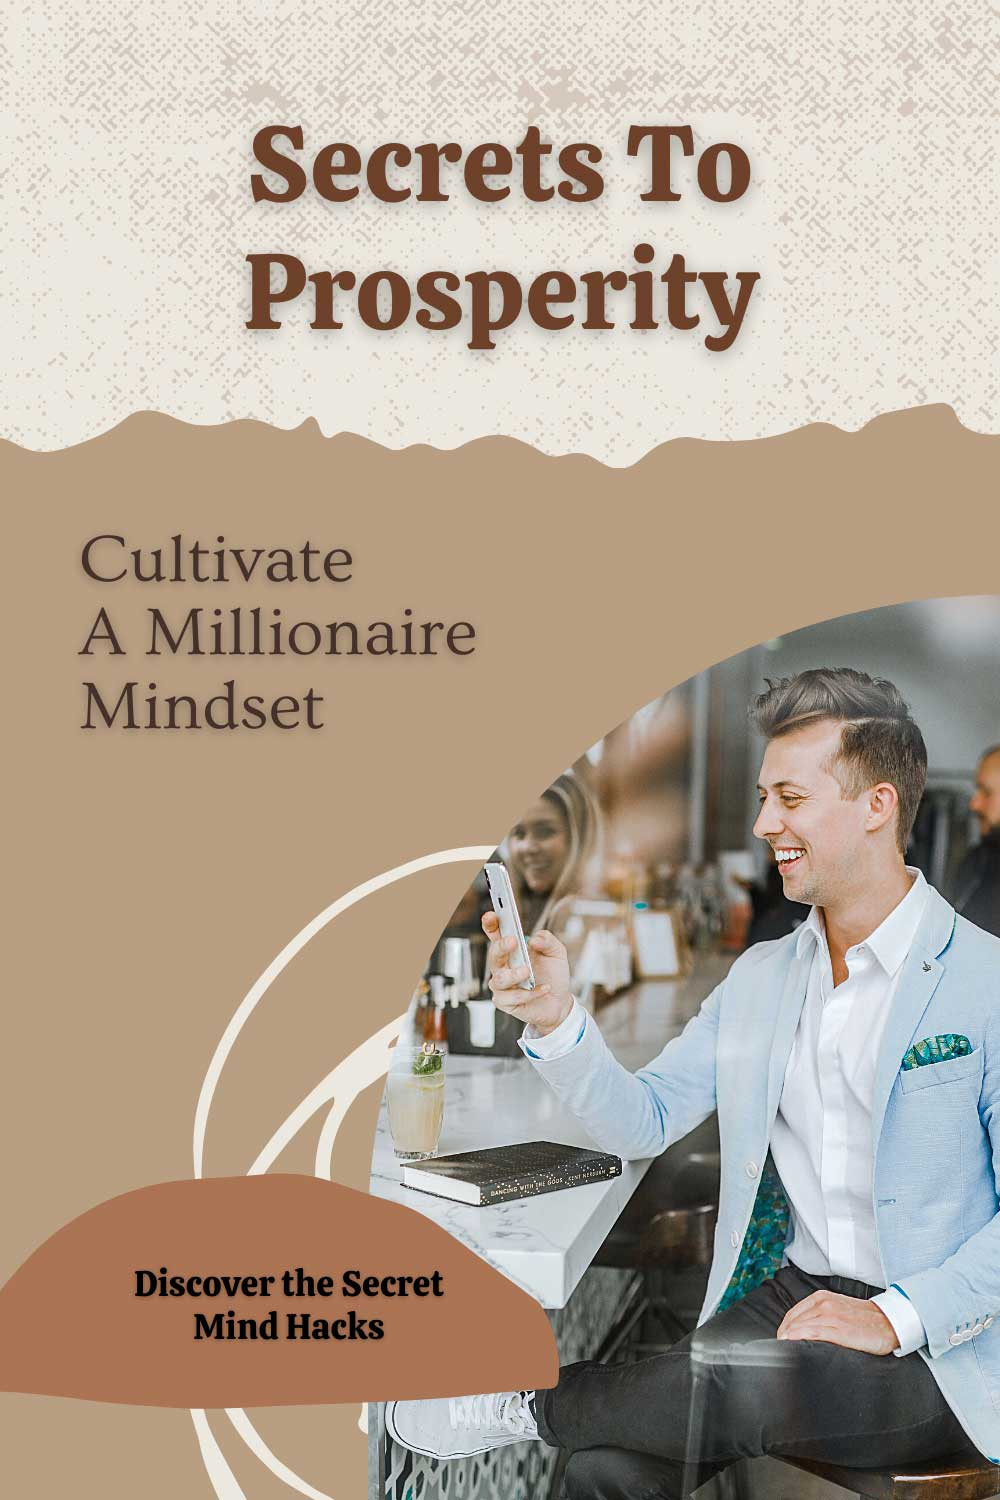 Discover the secret to prosperity and wealth how to  cultivate a millionaire mindset